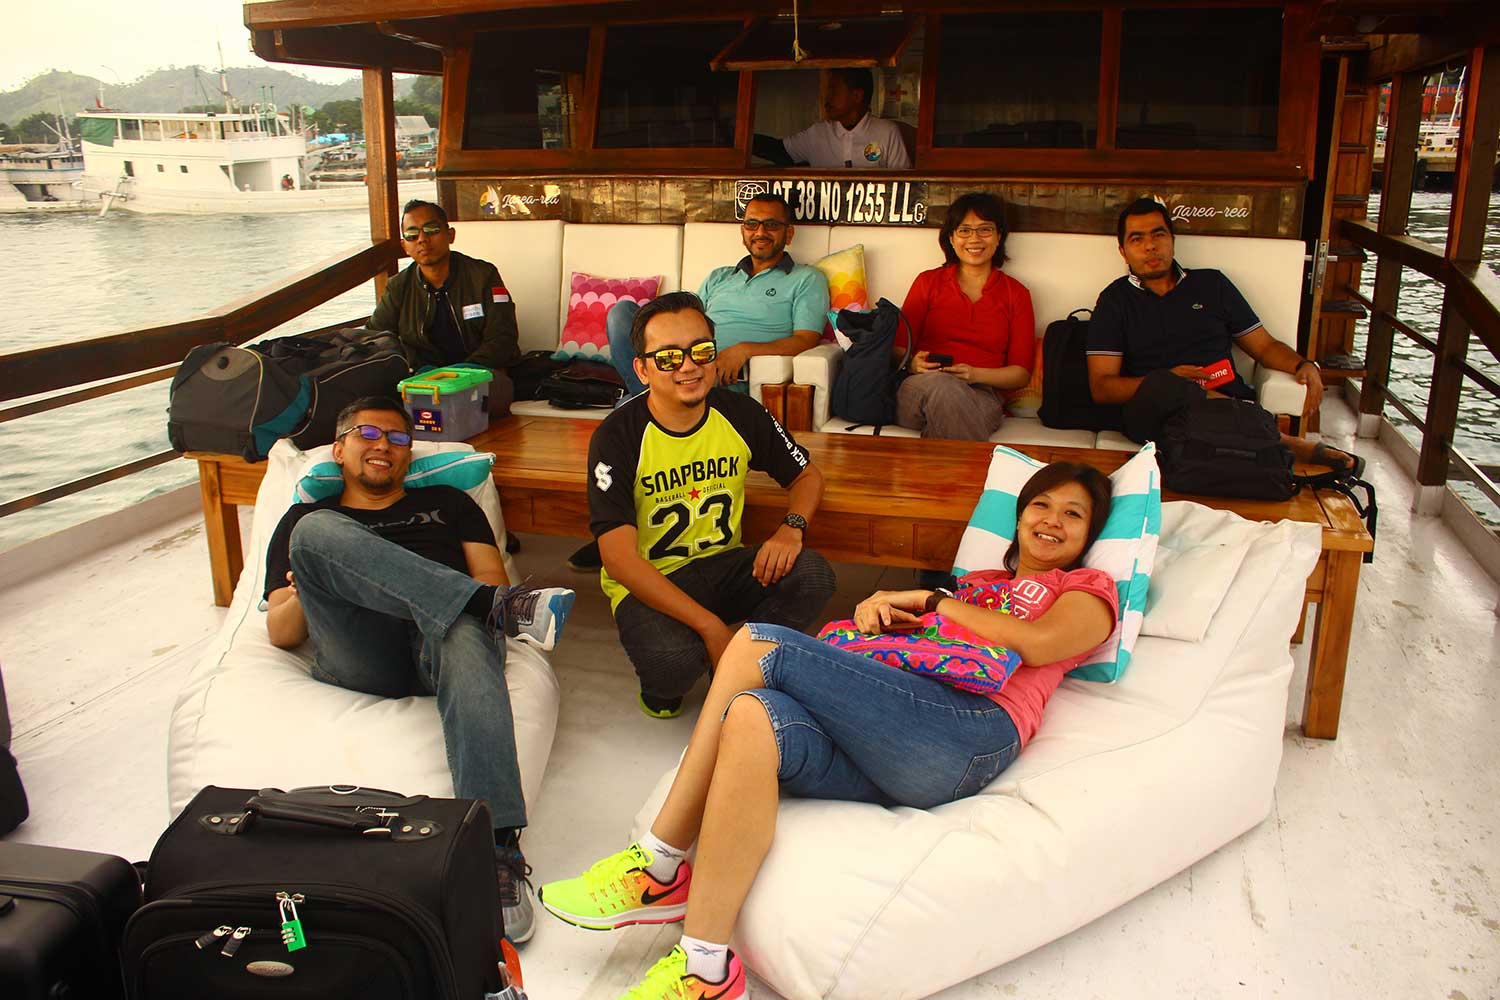 trip-team building-labuan bajo-event org